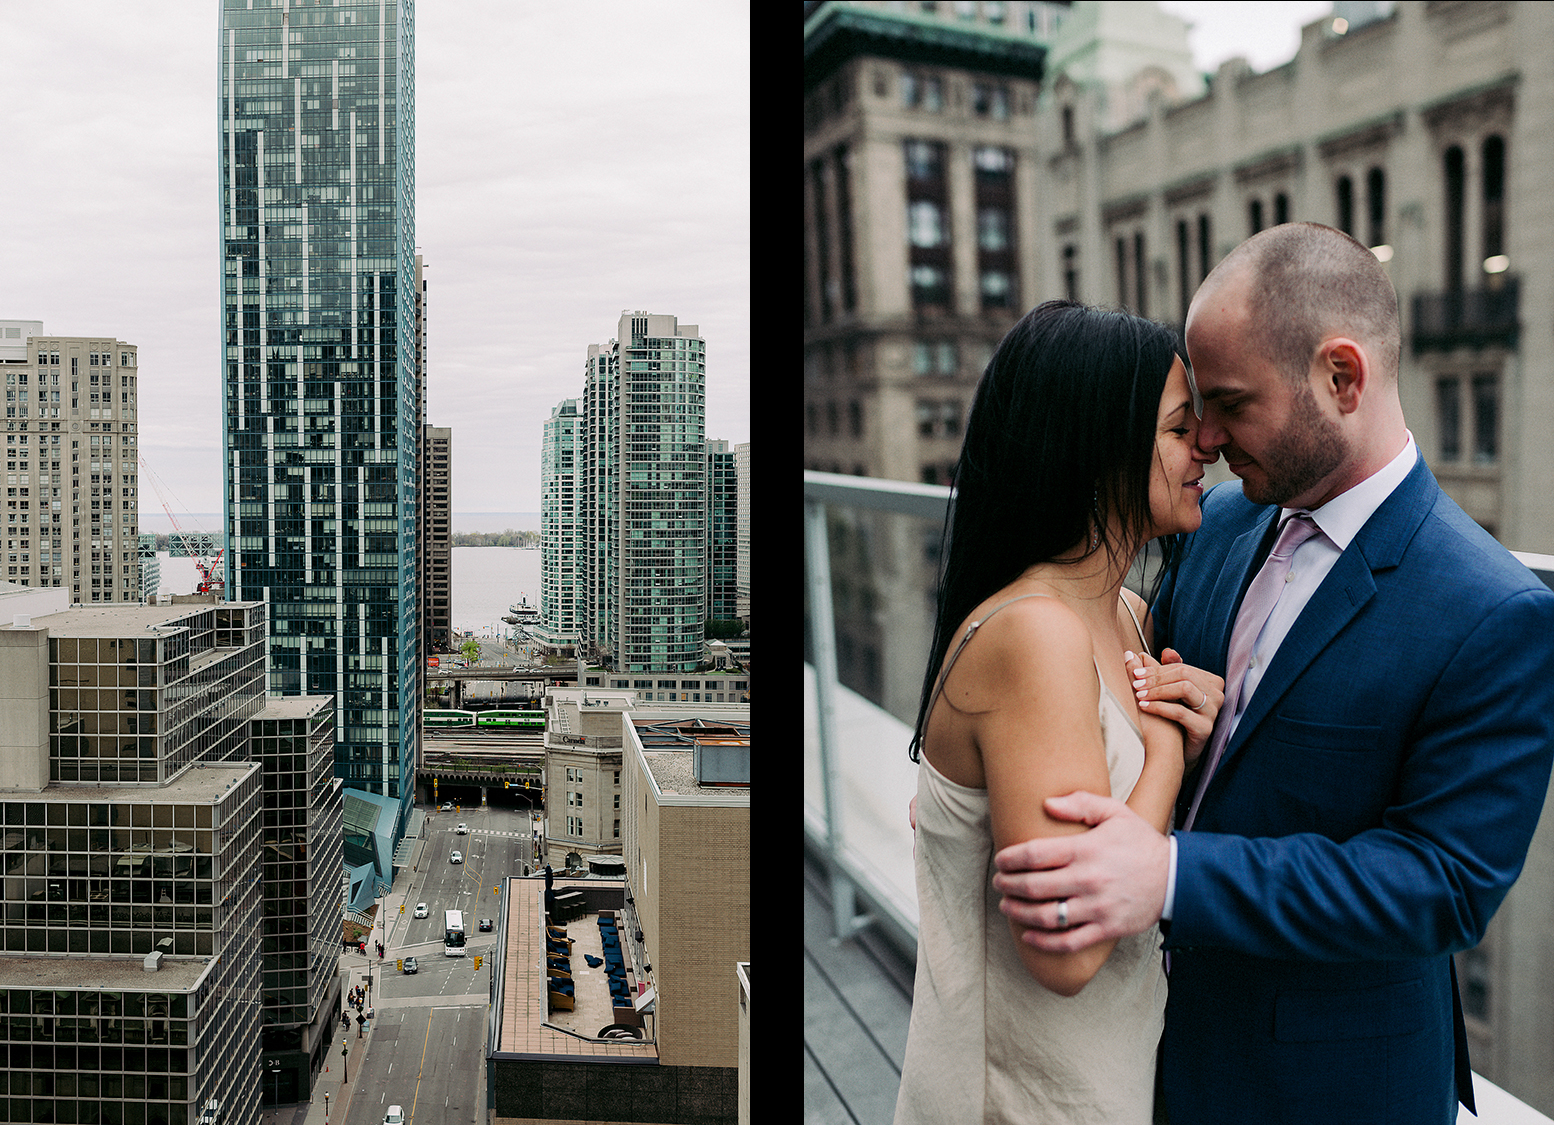 57-Best-Wedding-Photographers-in-Toronto-3B-Photography-Editorial-Fine-Art-Analog-Wedding-Photography-Toronto-Skyline-Rooftop-Views-spread.jpg